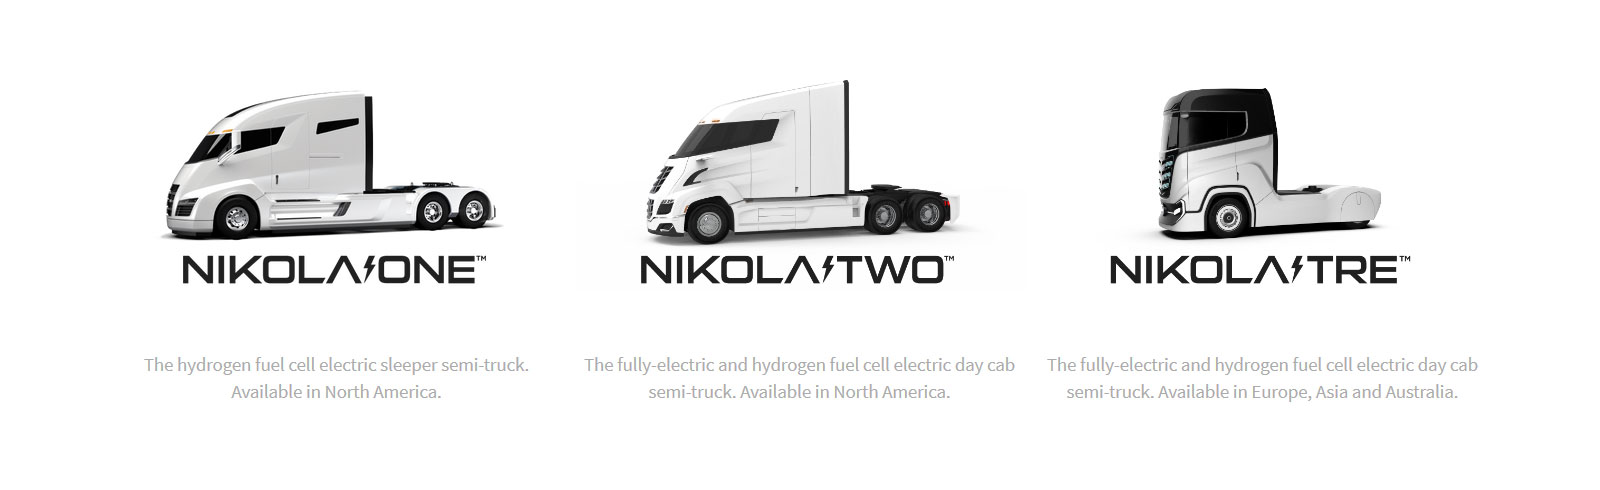 The US Department of Energy grants Nikola Motor Company a $1.7 million award